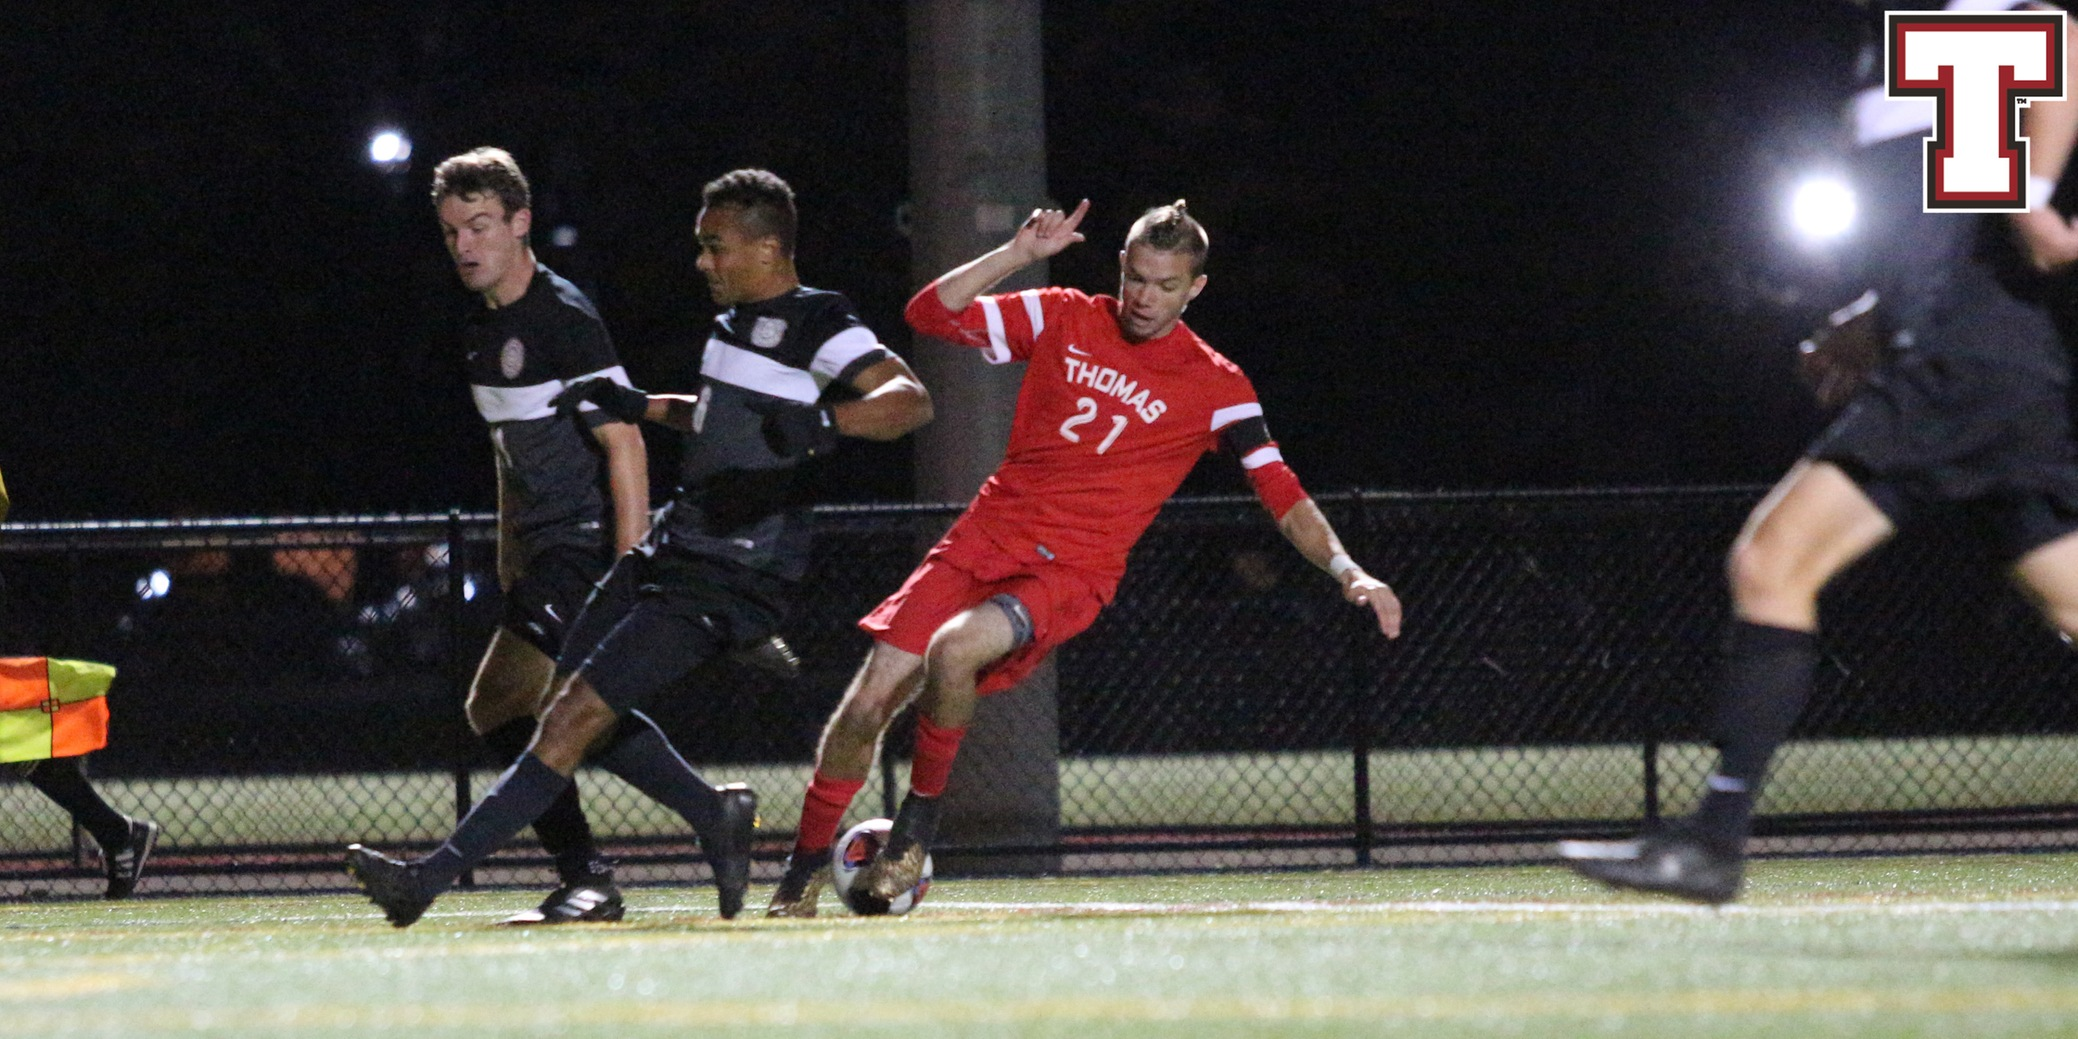 Late Penalty Kick Lifts Southern Maine Past Terriers, 1-0